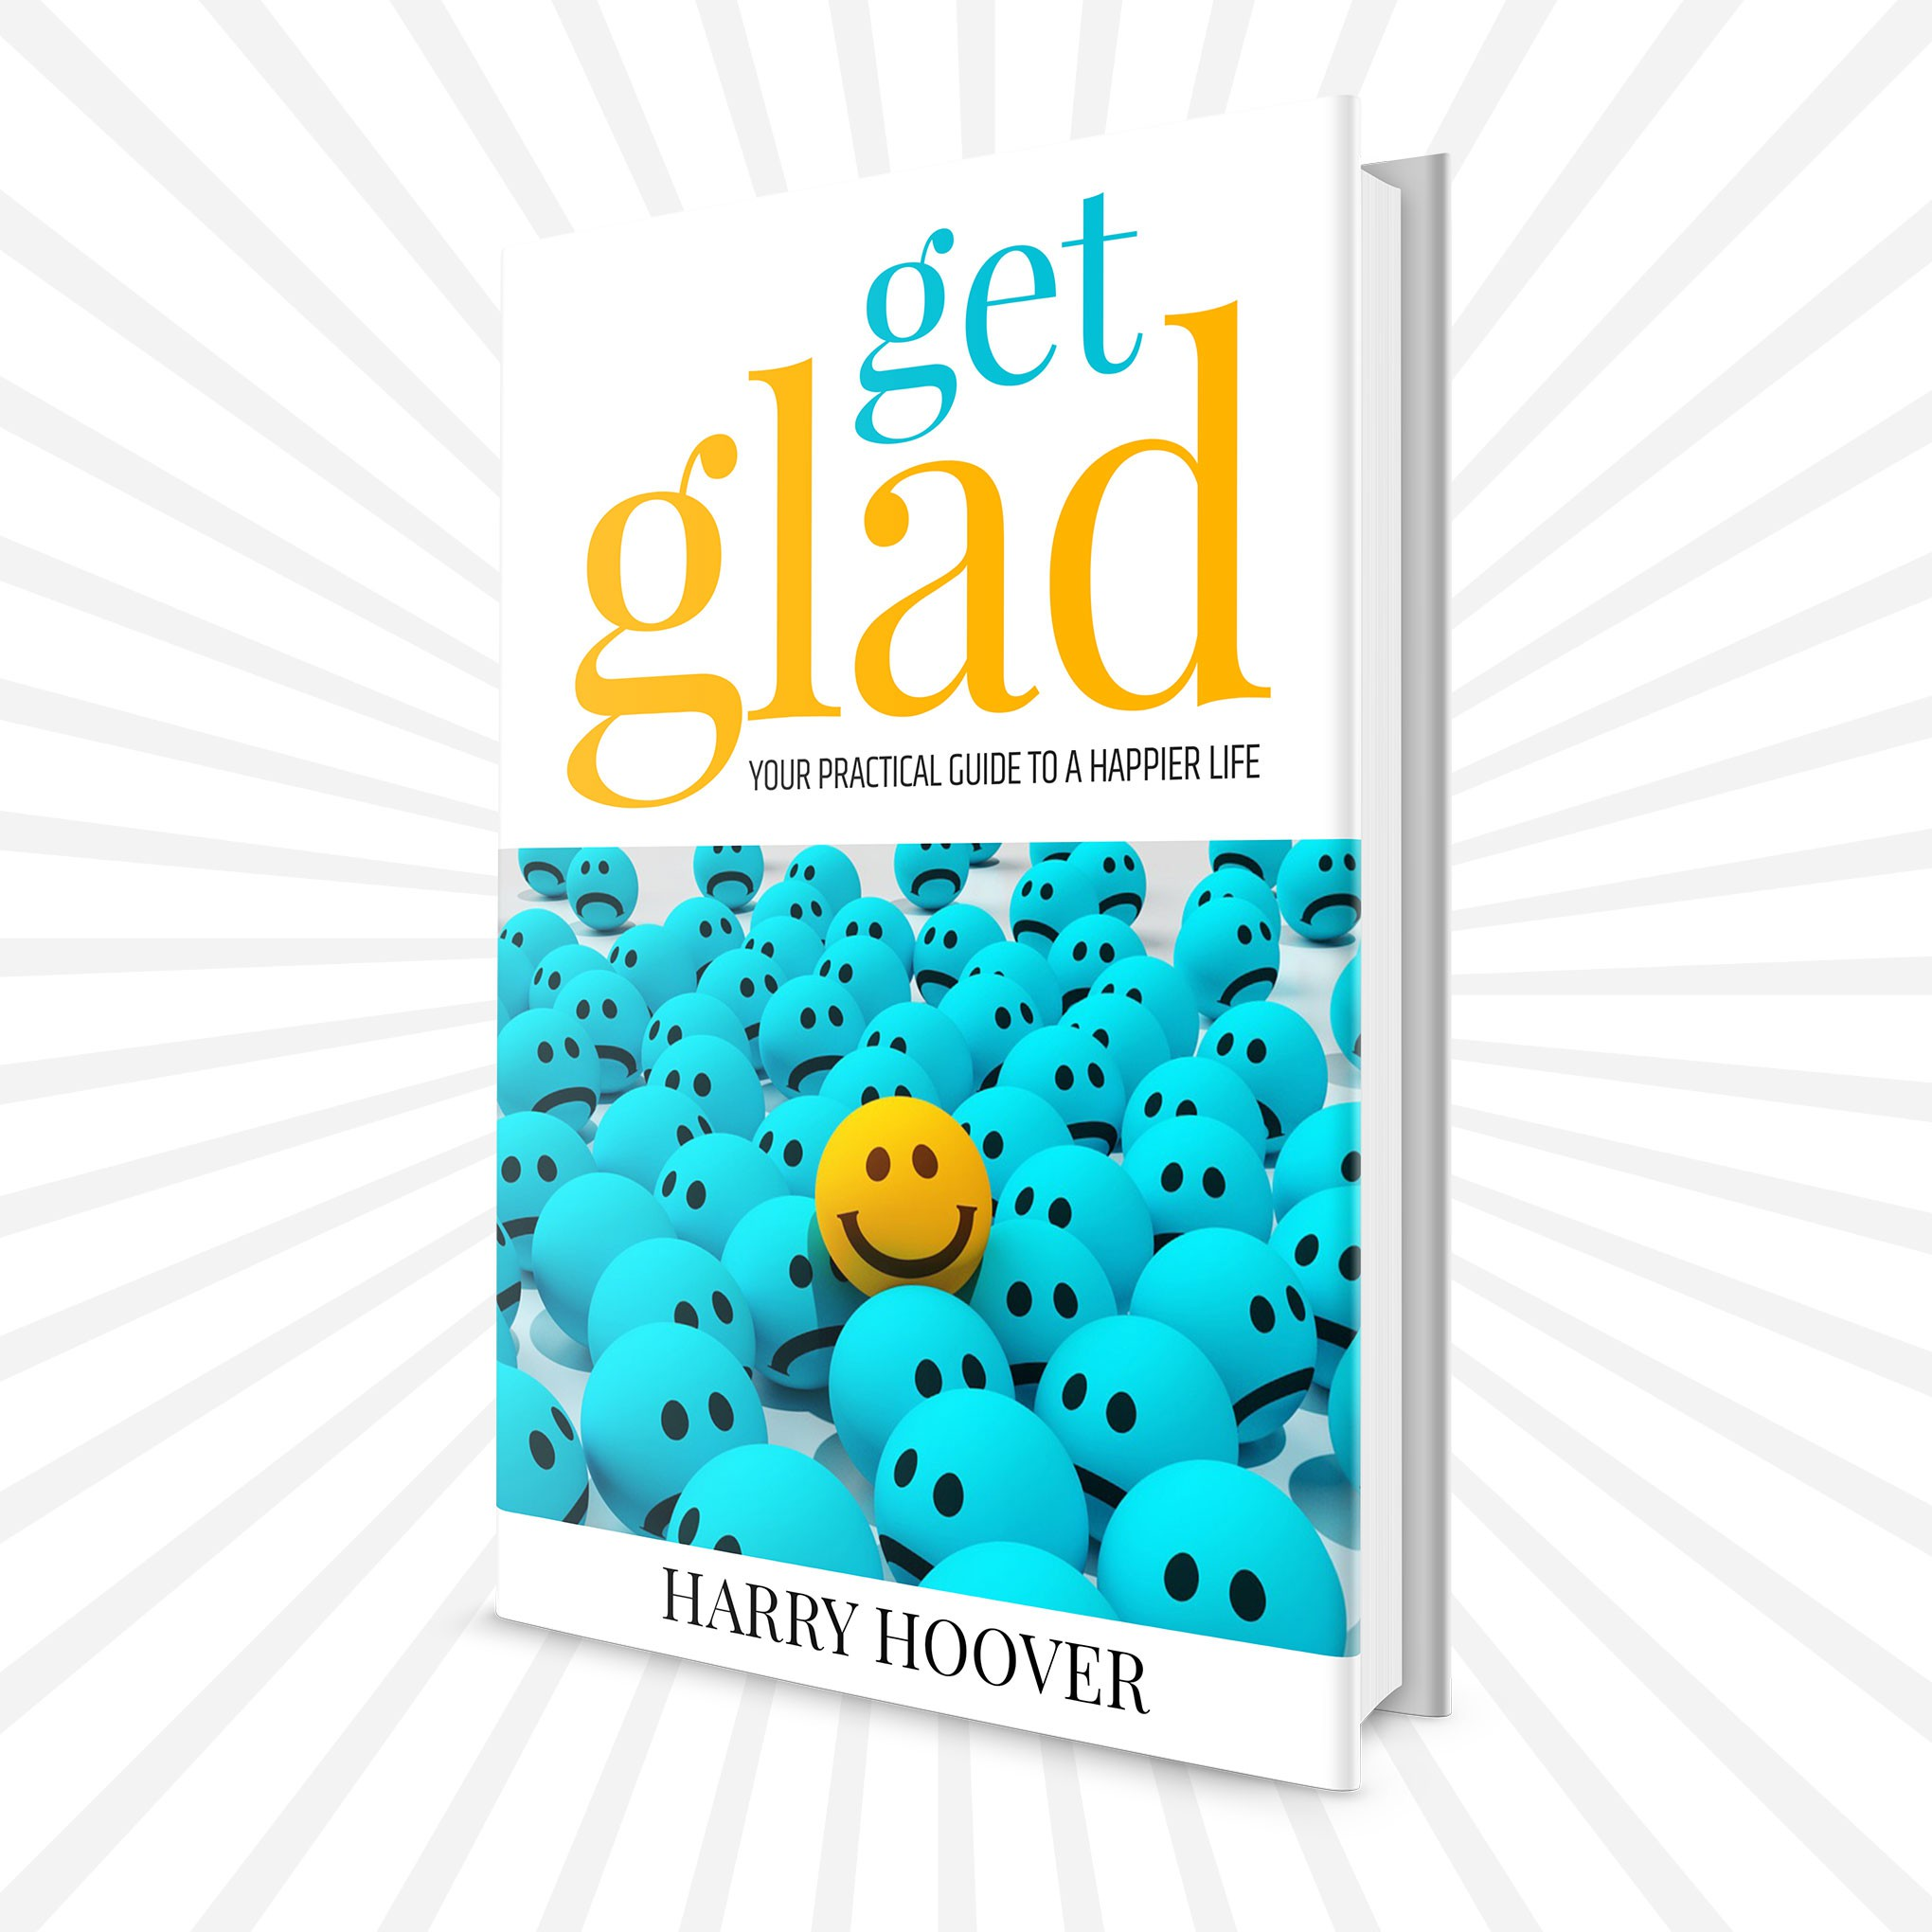 Create an eye-catching cover design for a nonfiction, life-changing self-improvement book.